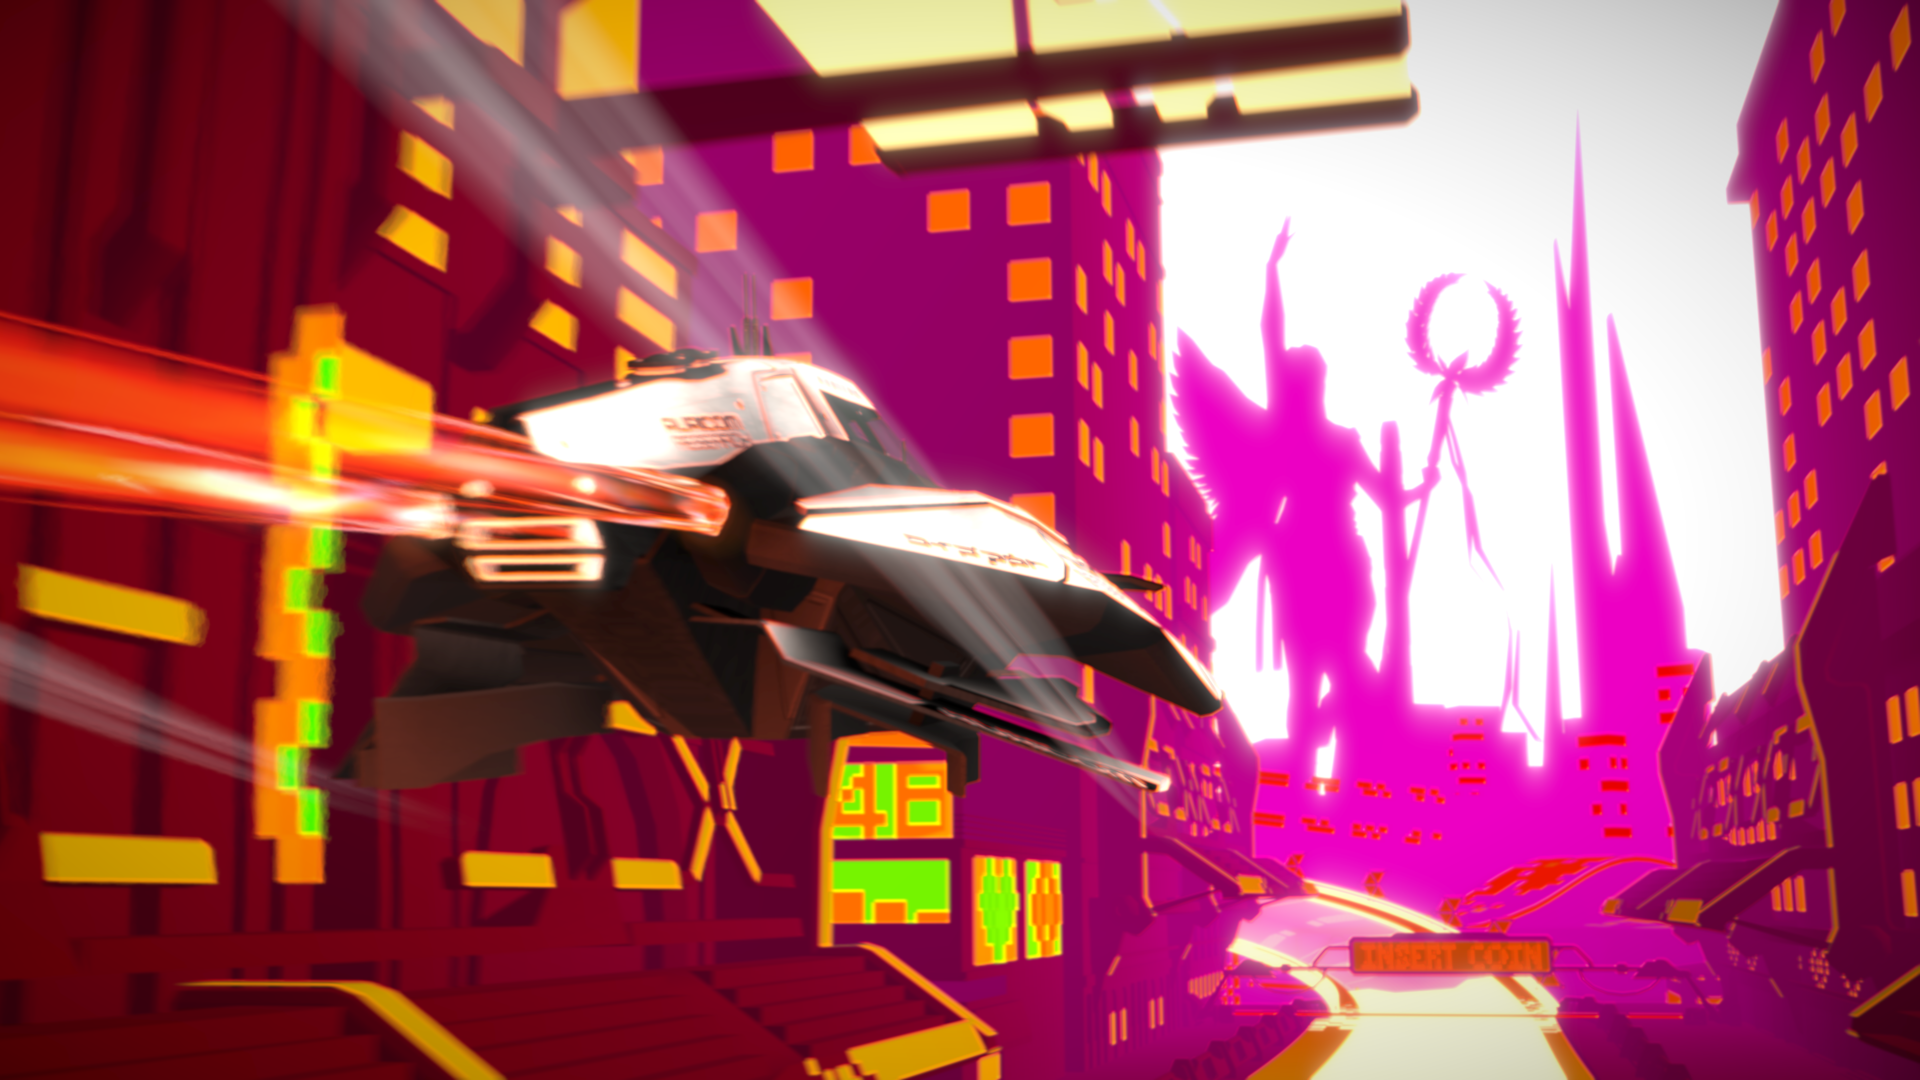 wipeout47_o.png